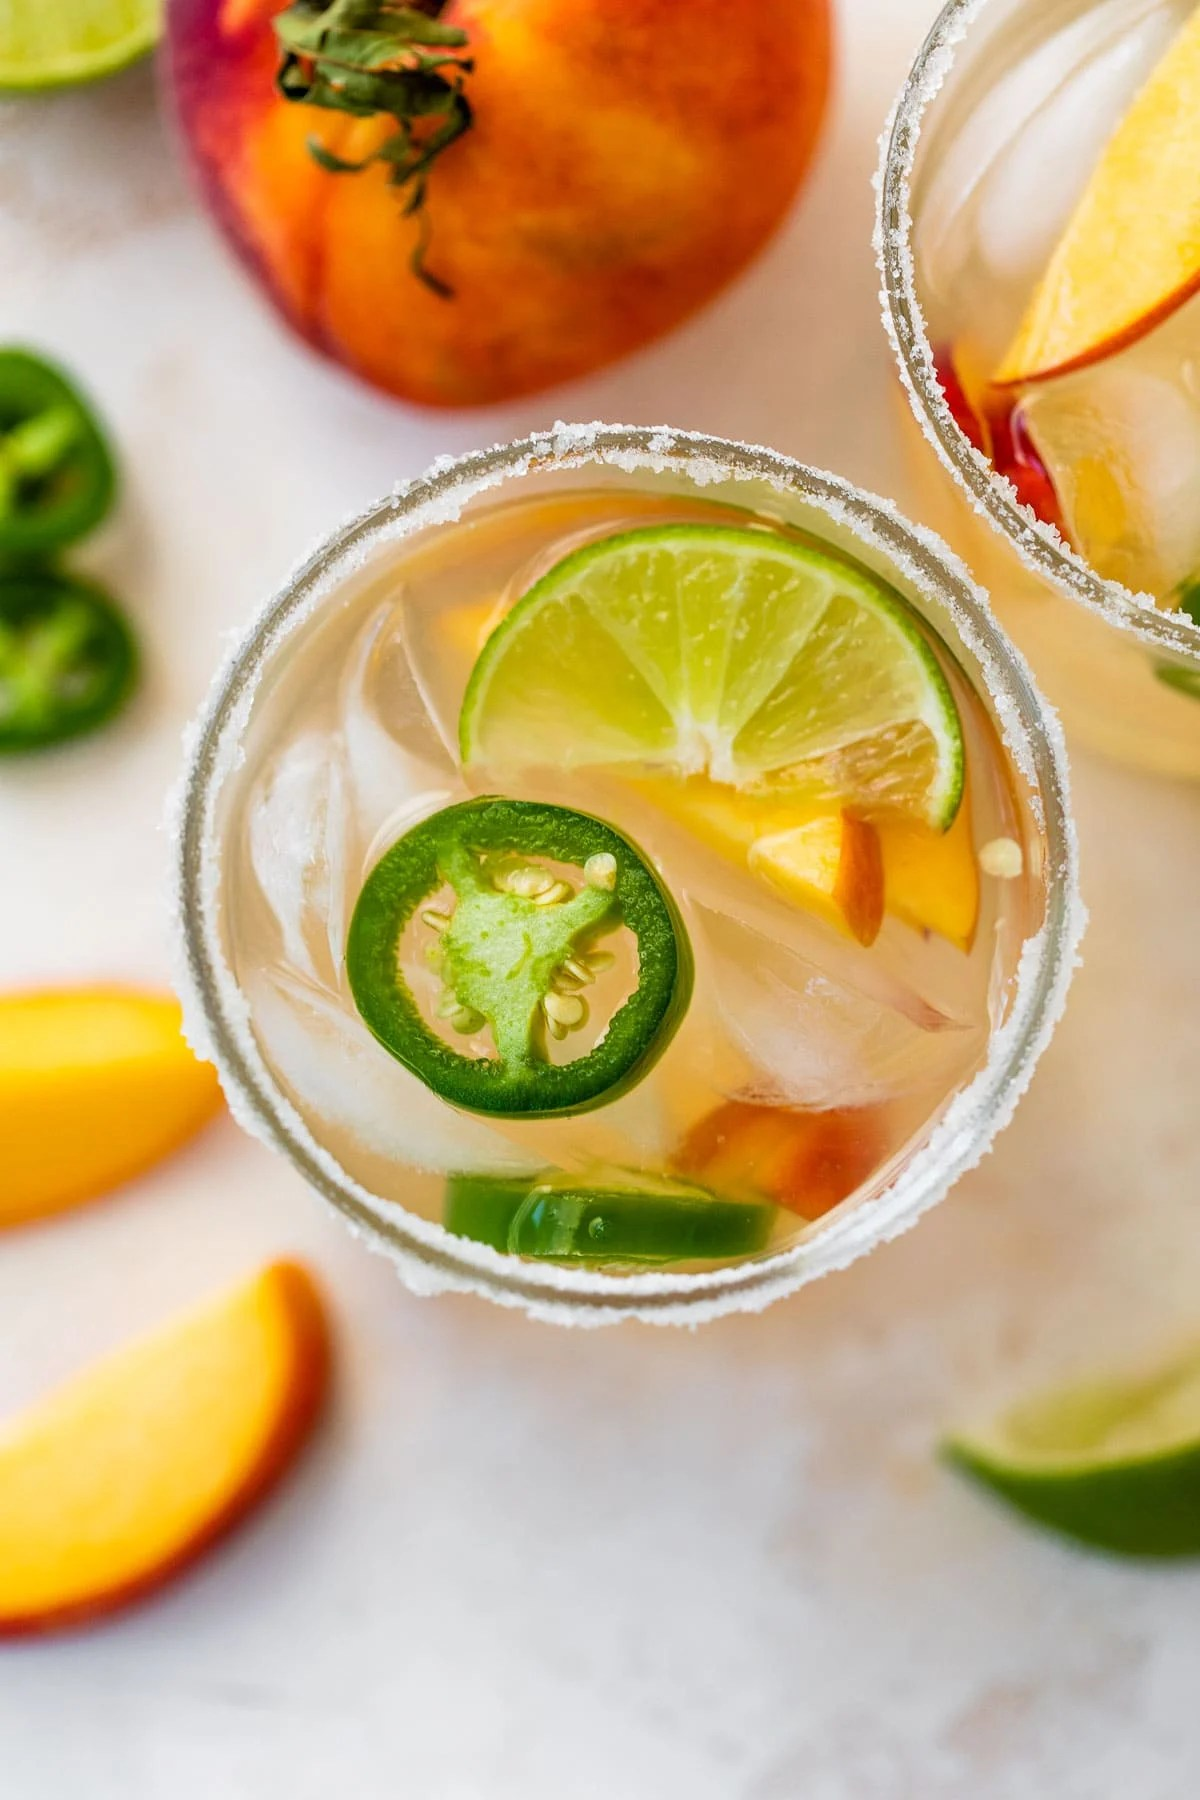 Peach Jalapeno Margaritas-Fresh peach margaritas with a kick